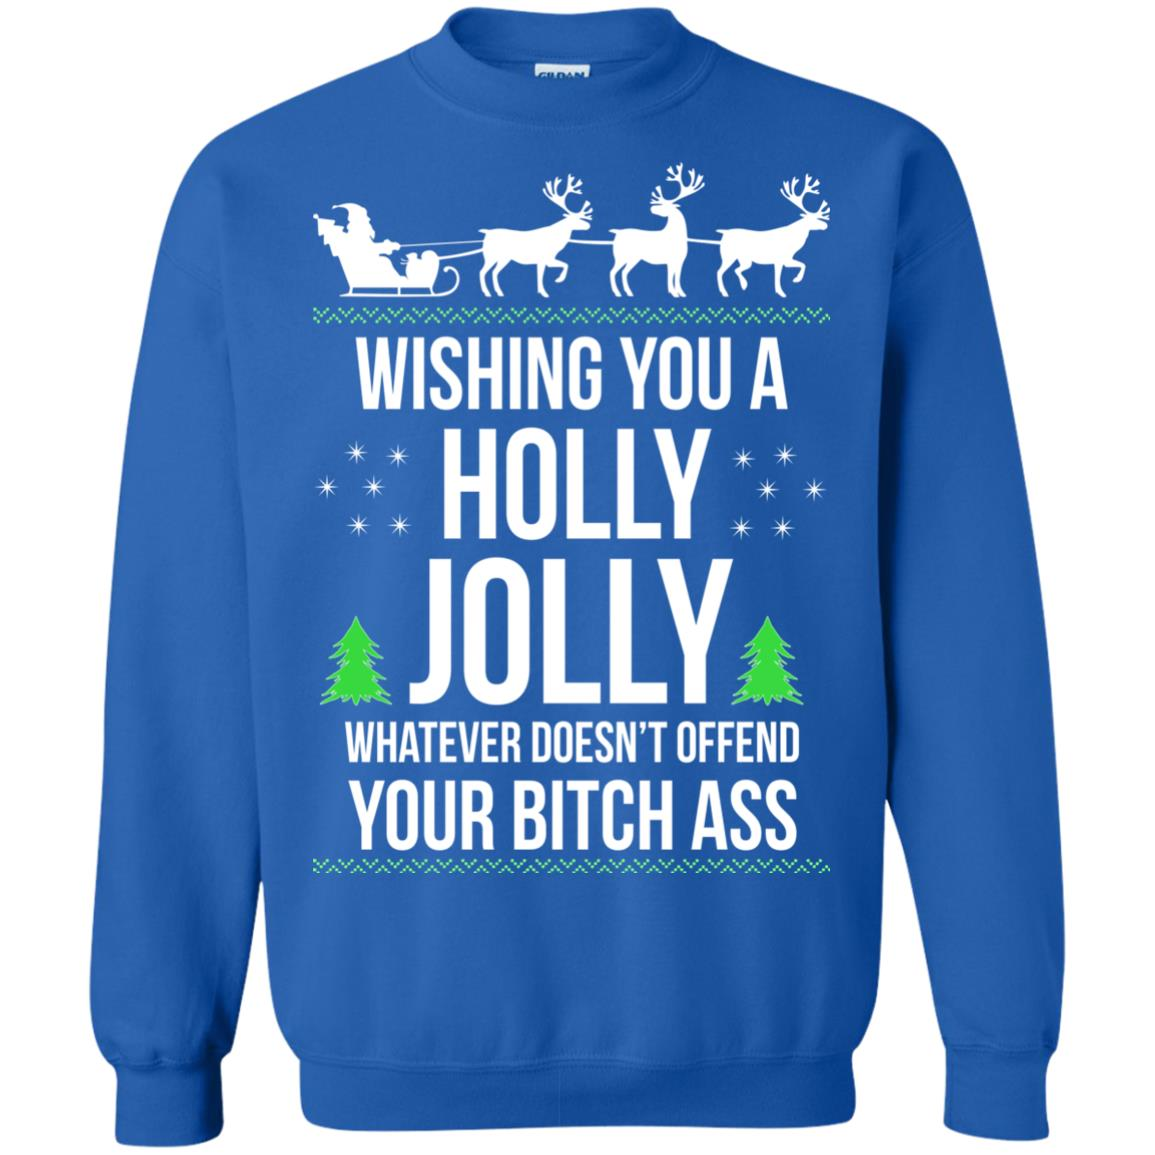 image 1192 - Wishing you a holly jolly whatever doesn't offend your bitch ass sweater, shirt